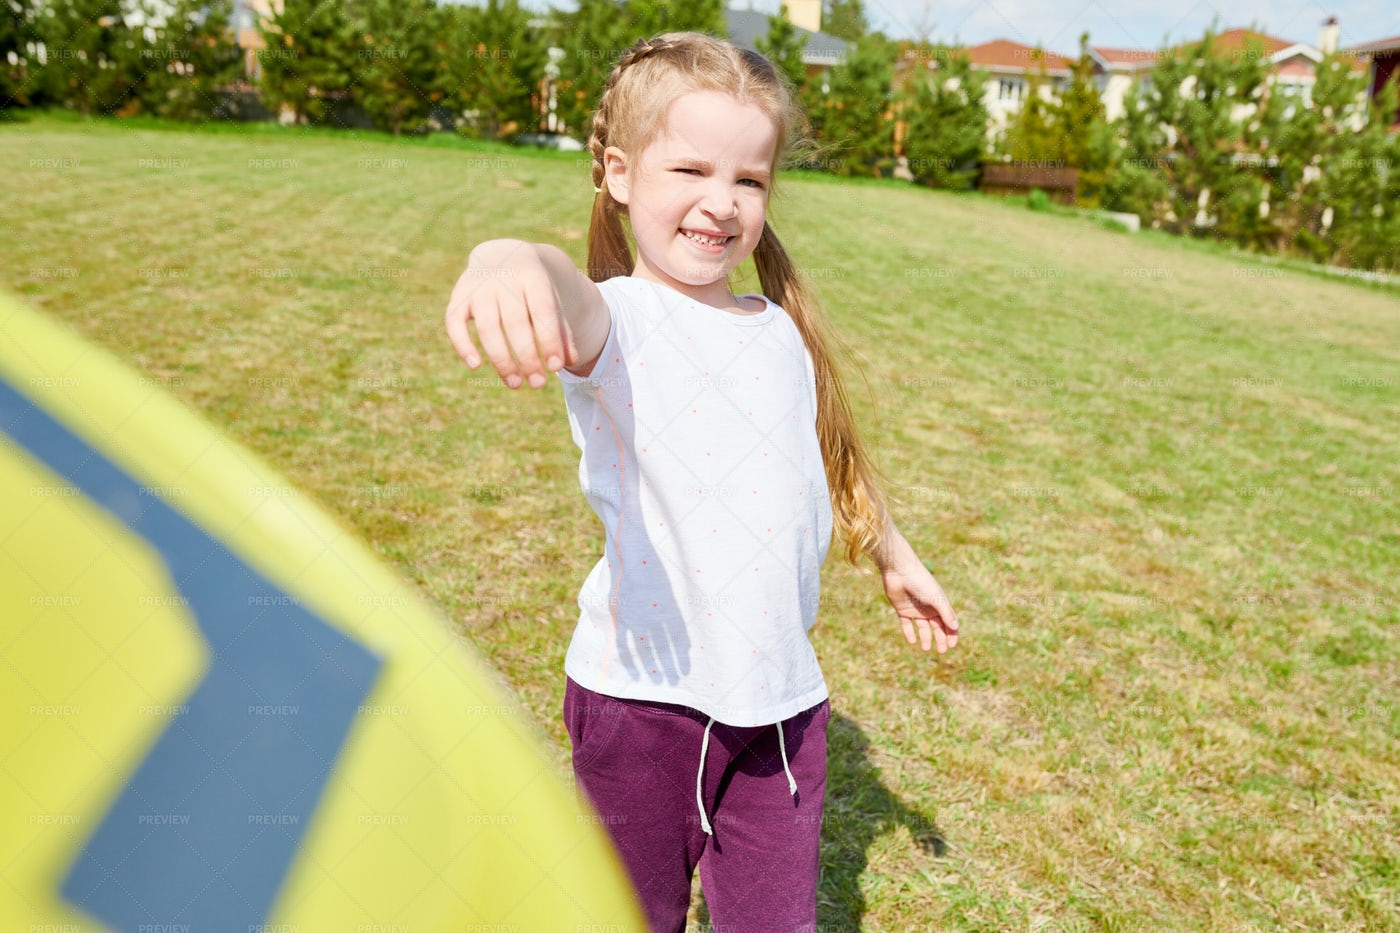 Girl Playing With Flying Disc: Stock Photos